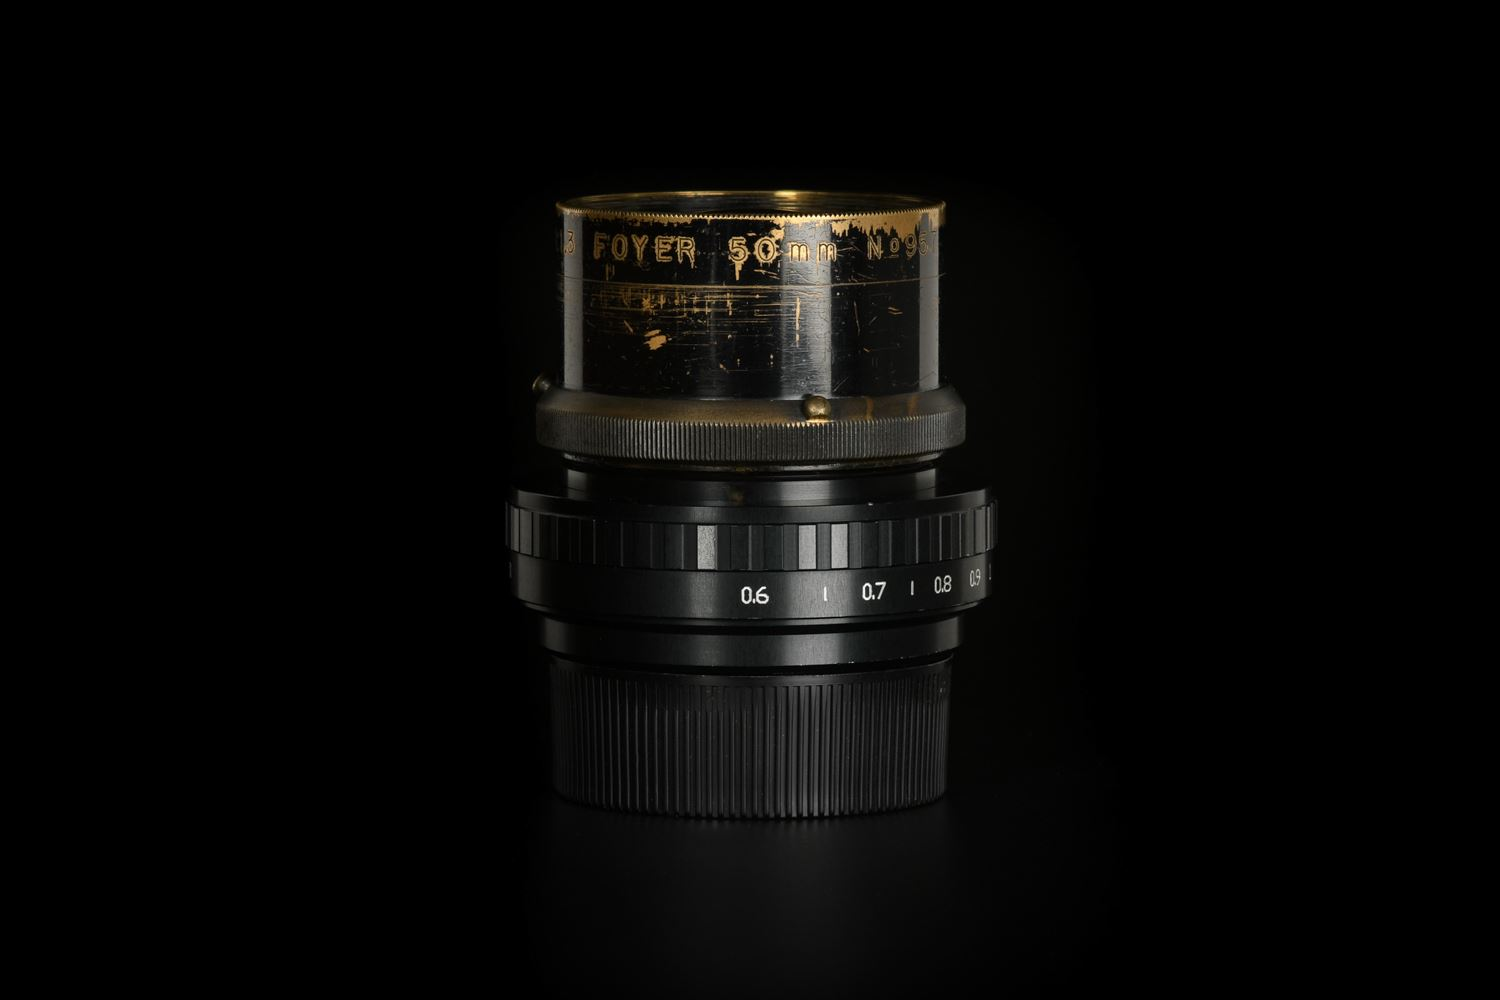 Picture of Kinoptik Fulgior Foyer 50mm f/1.3 mod. to Leica M, Very Early Version